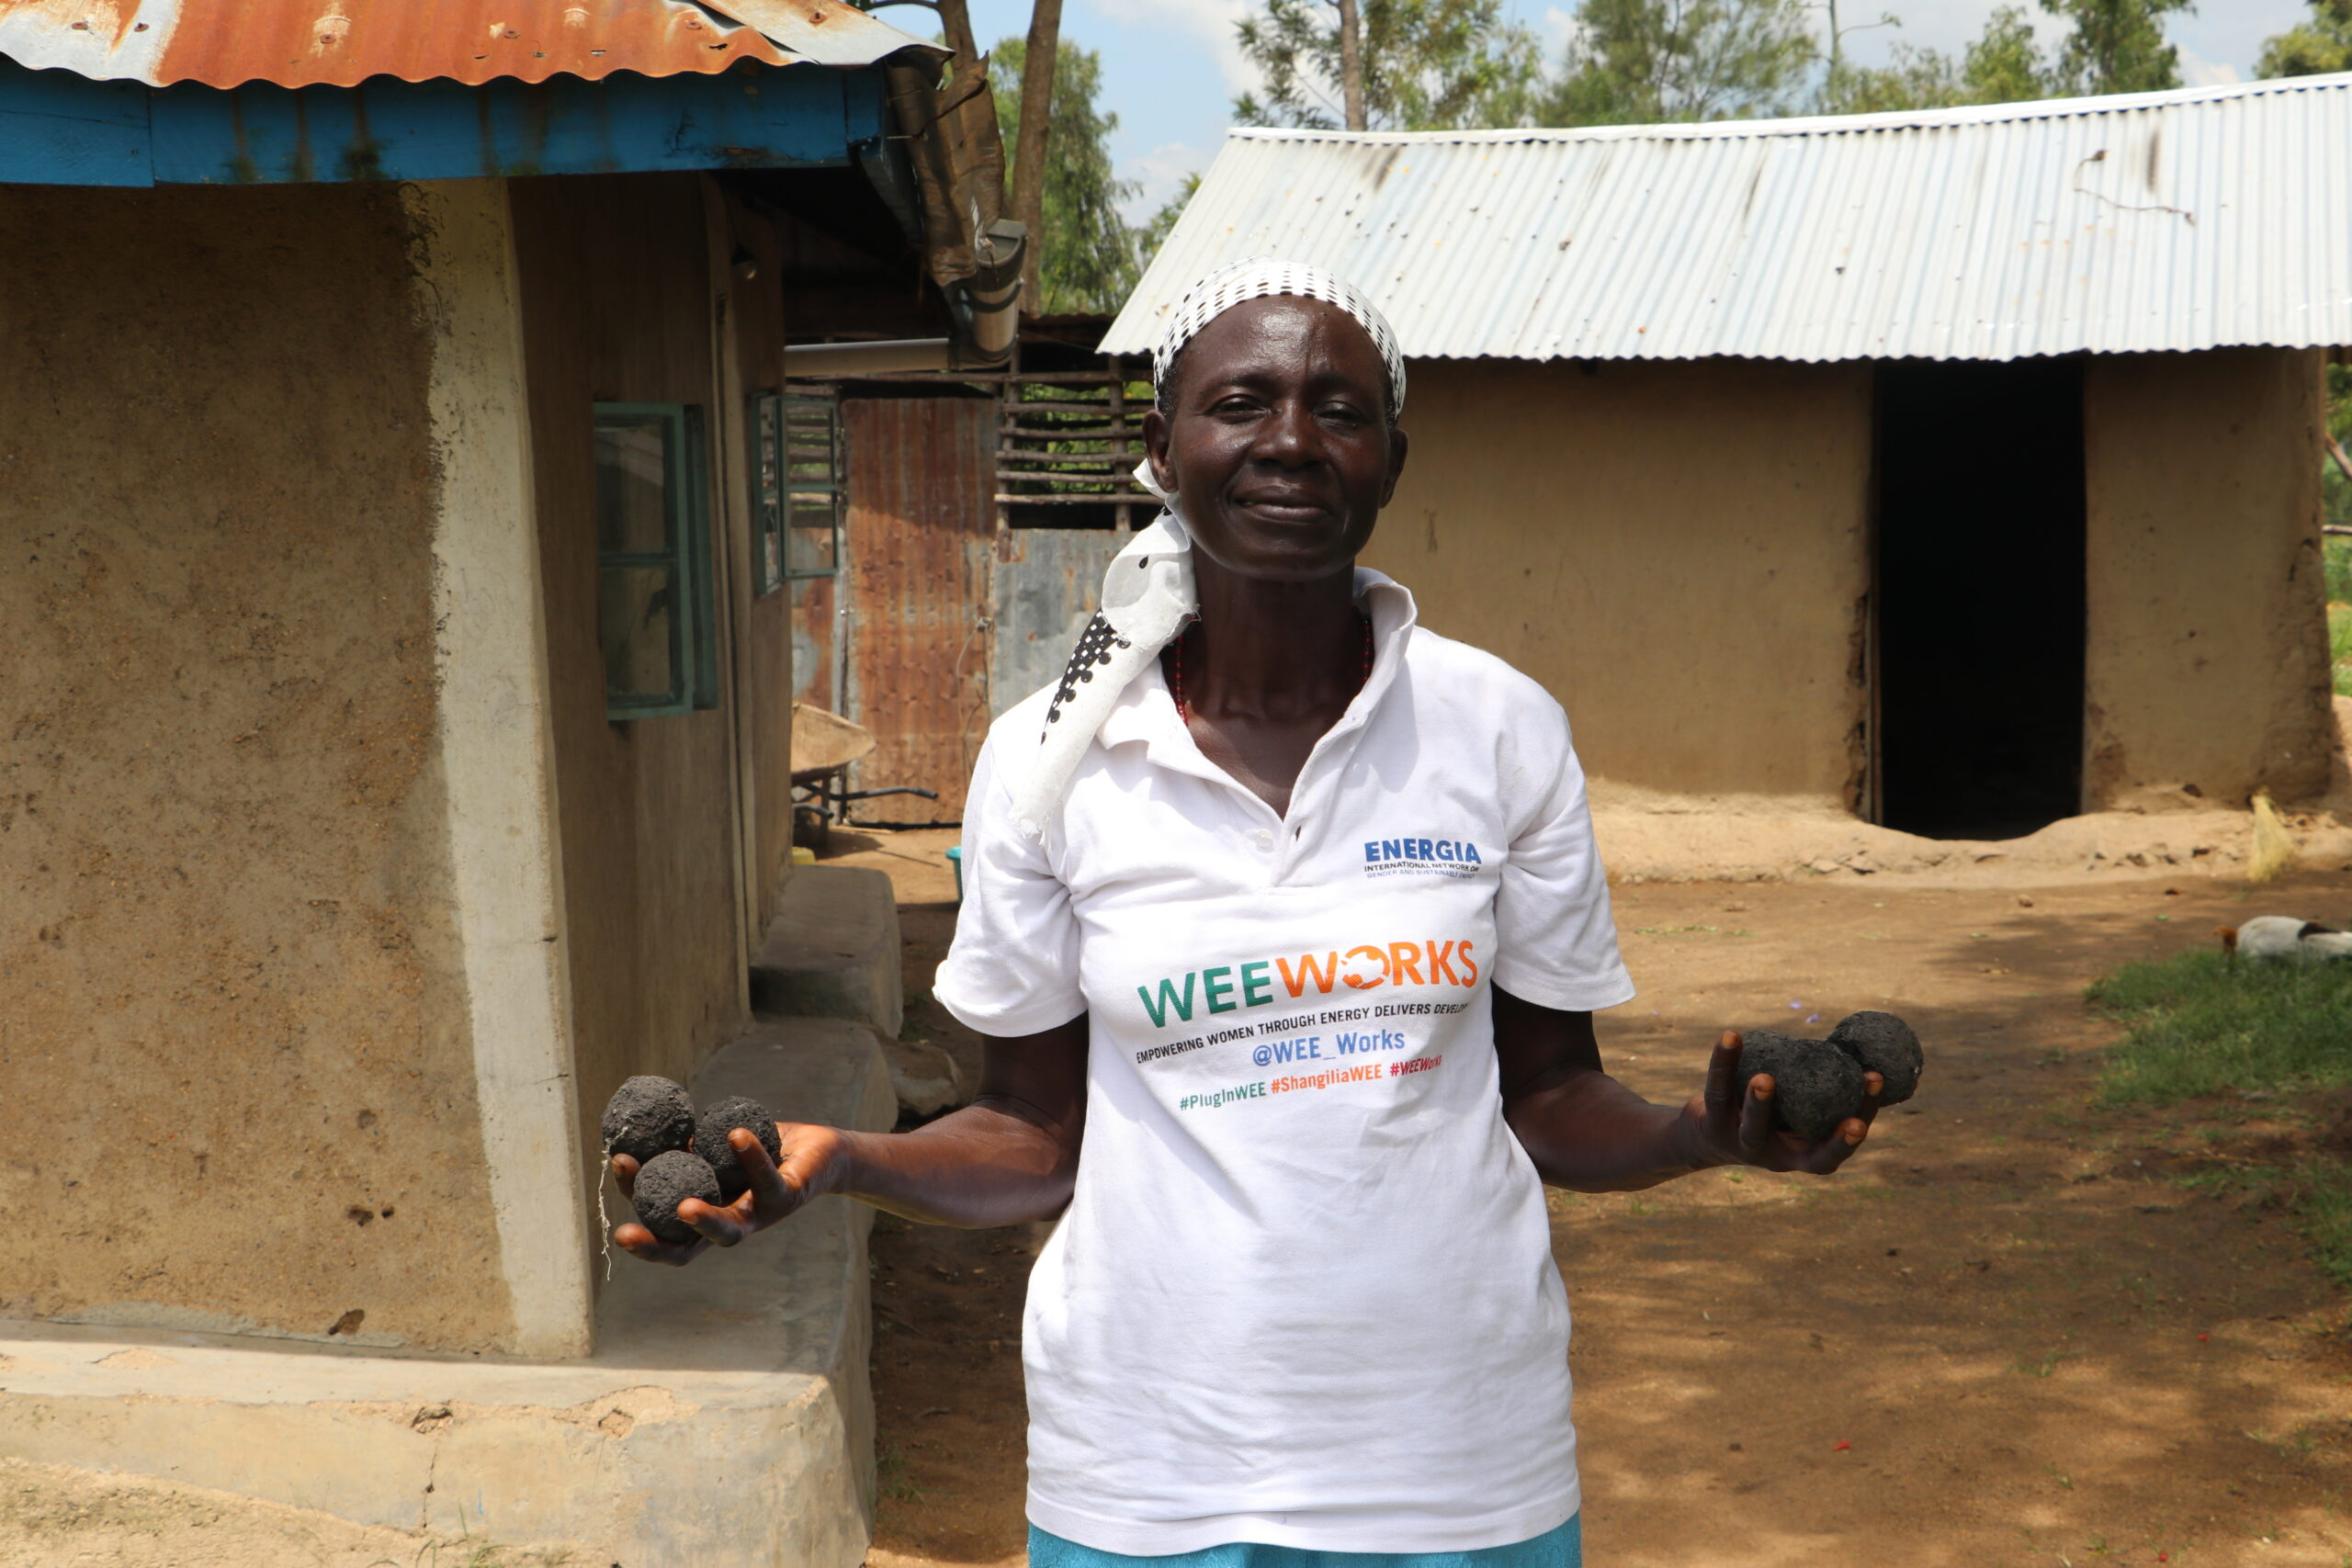 Millicent's challenges and successes to scale up her energy business